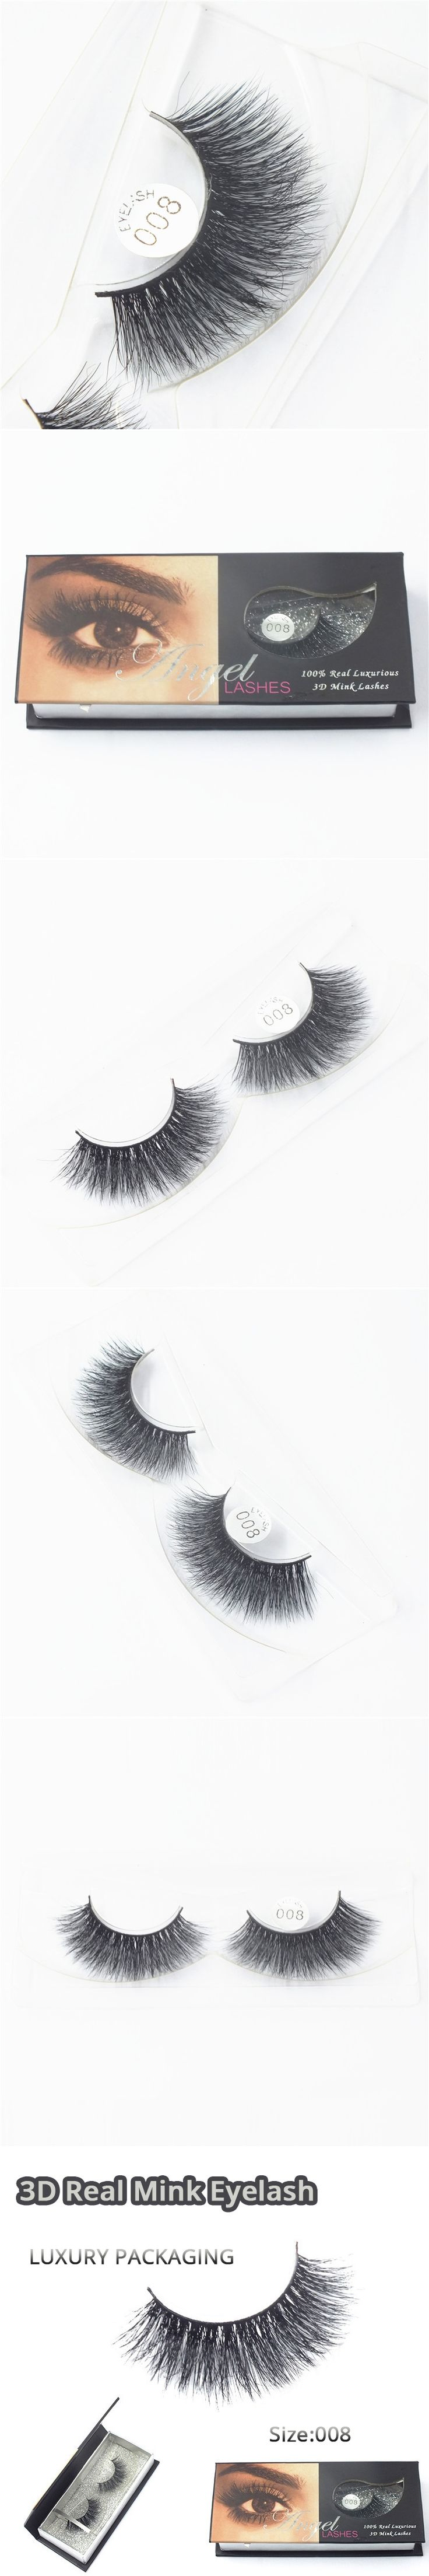 Wholesale Natural 3D 100% Real Mink False Eye Lashes/ Permanent Mink Fake Eyelashes Extensions For Makeup Free Shipping M008